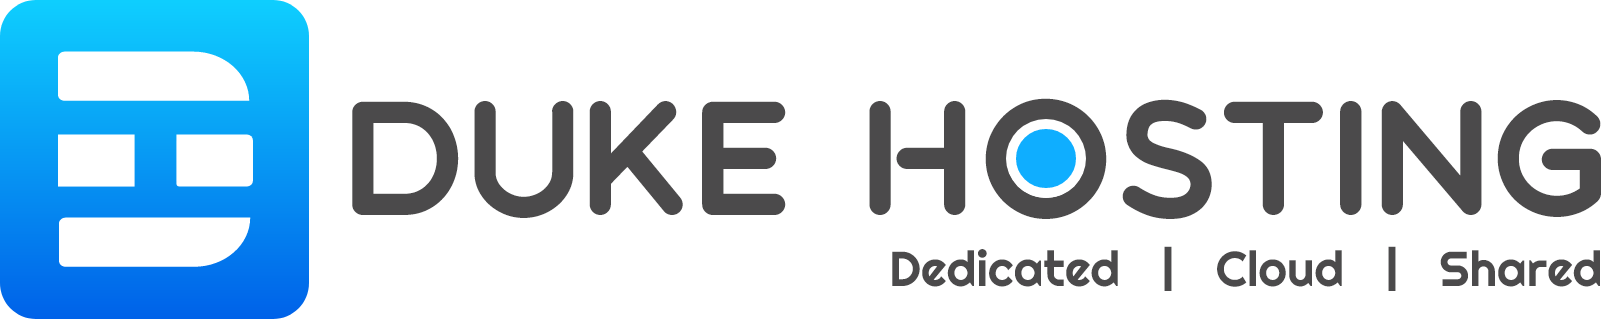 DUKE HOST PTE. LTD. logo